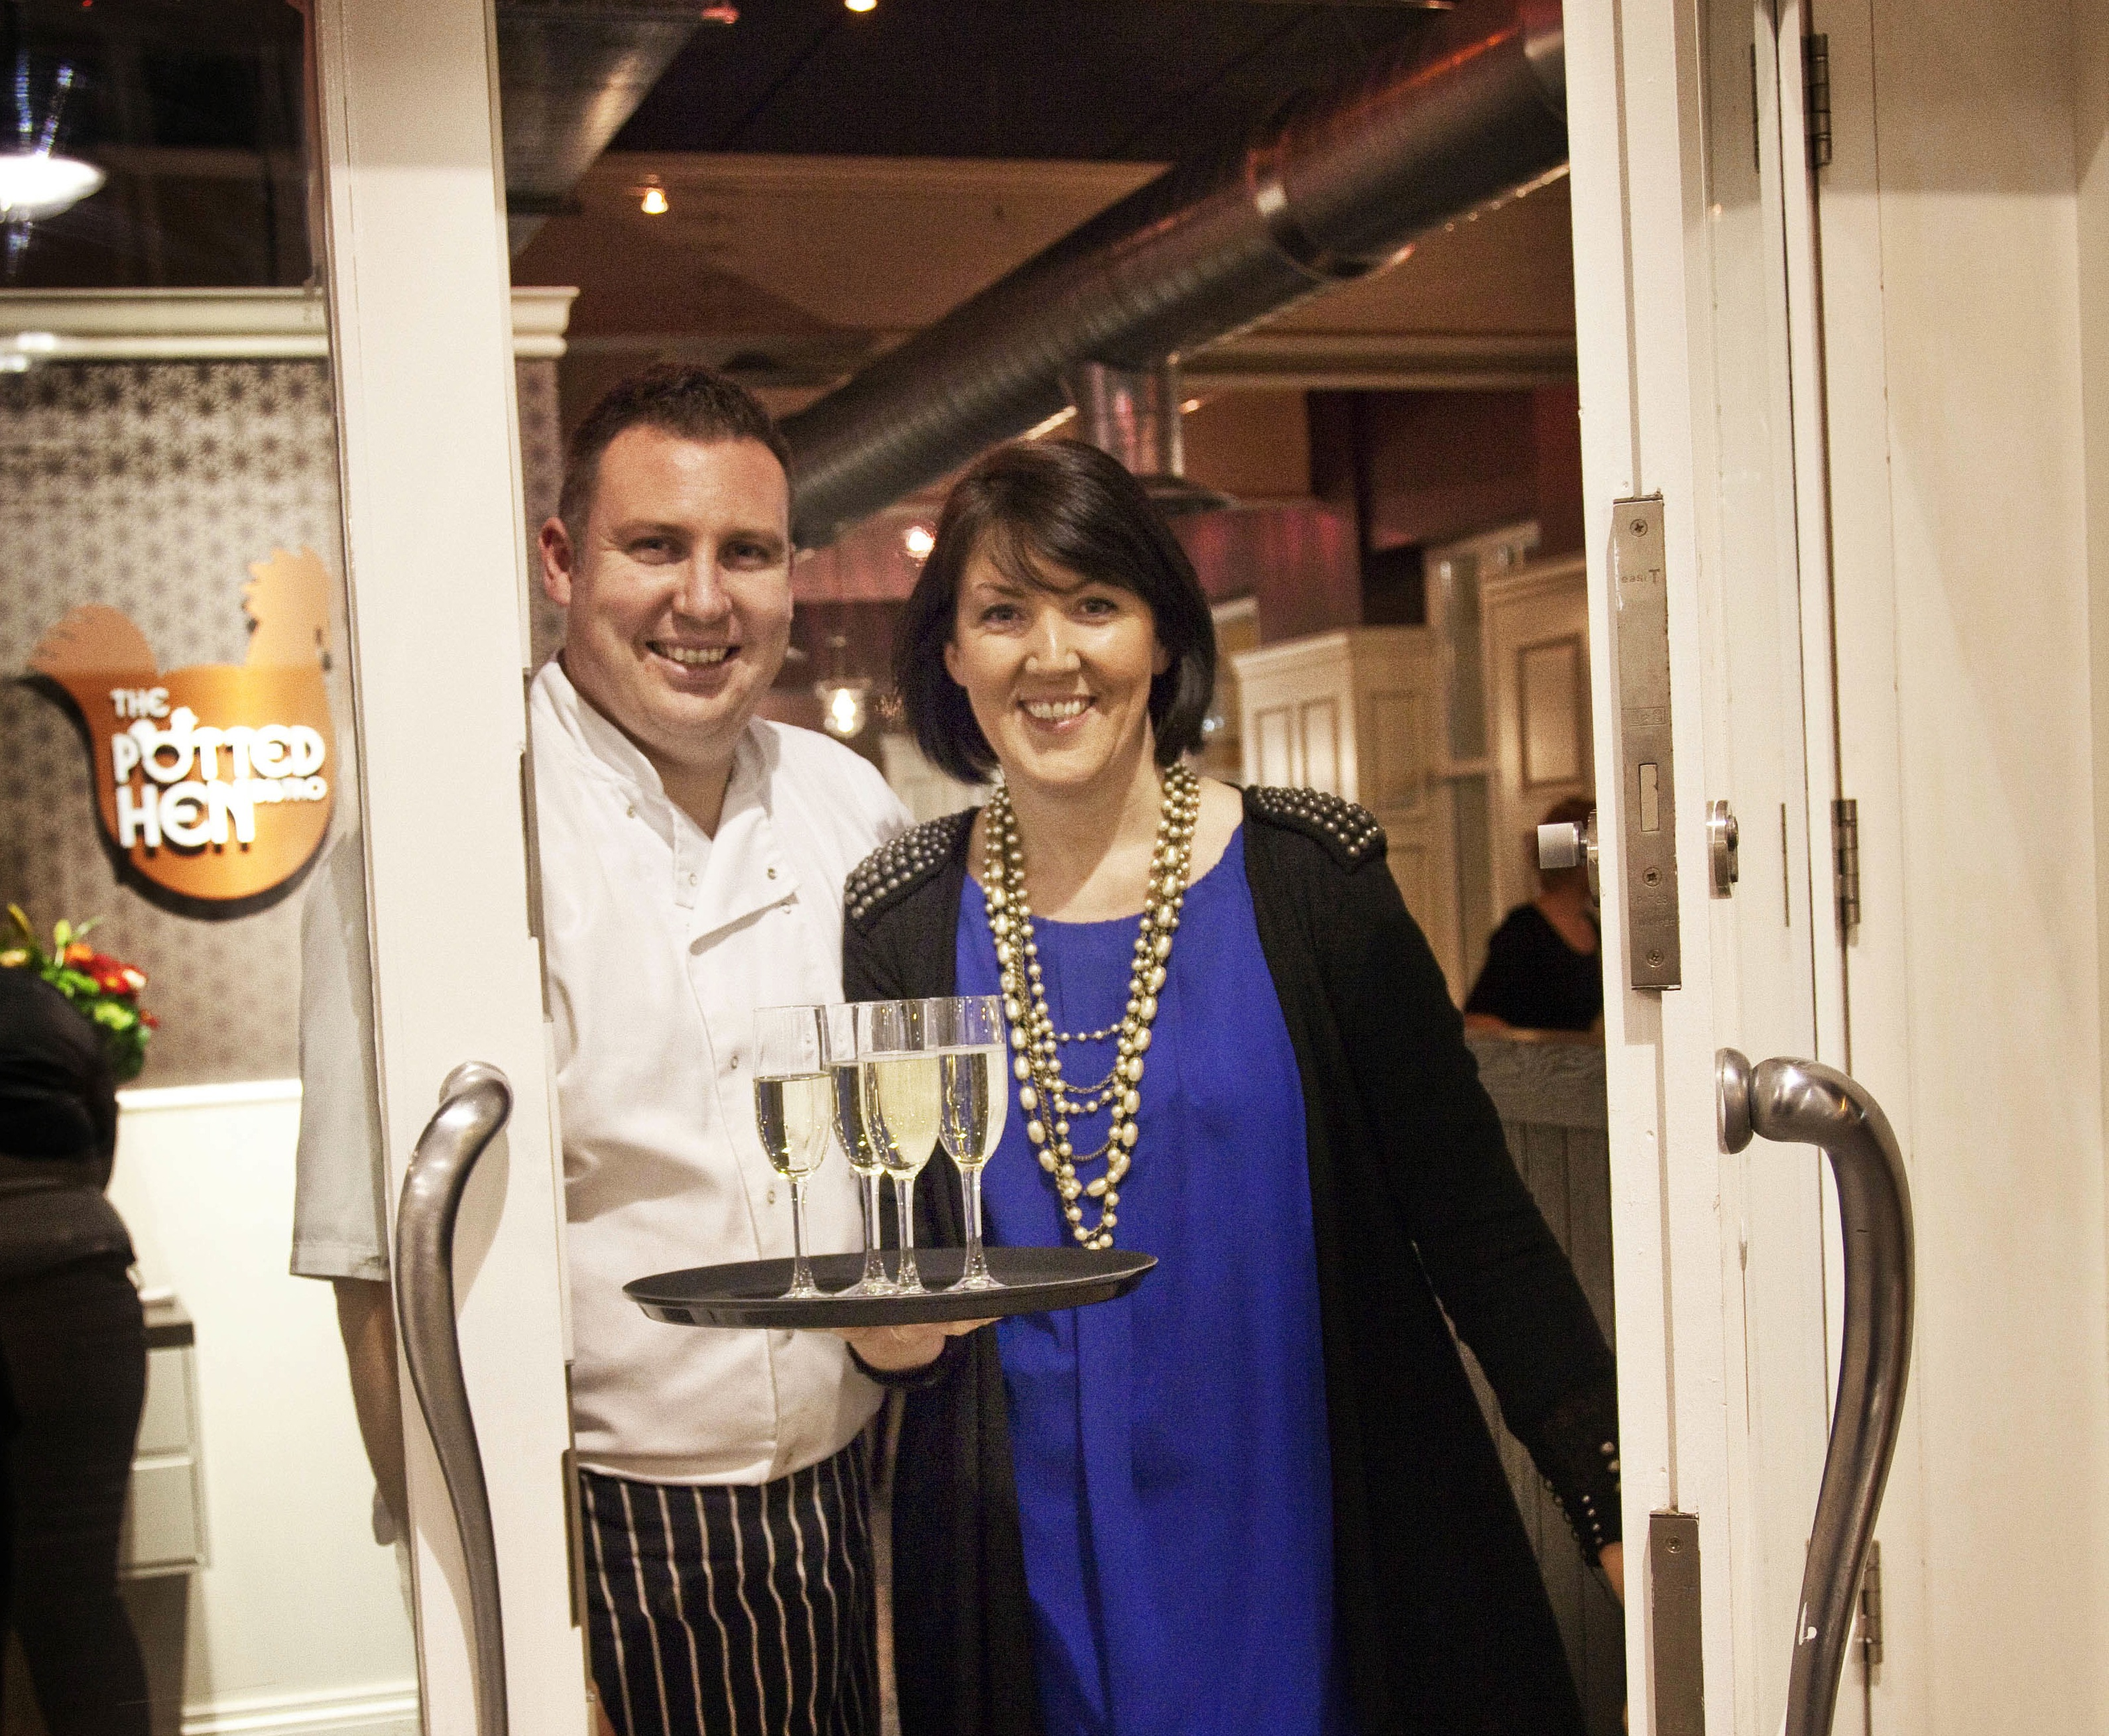 Belfast's newest restaurant opens in stylish Saint Anne's Square